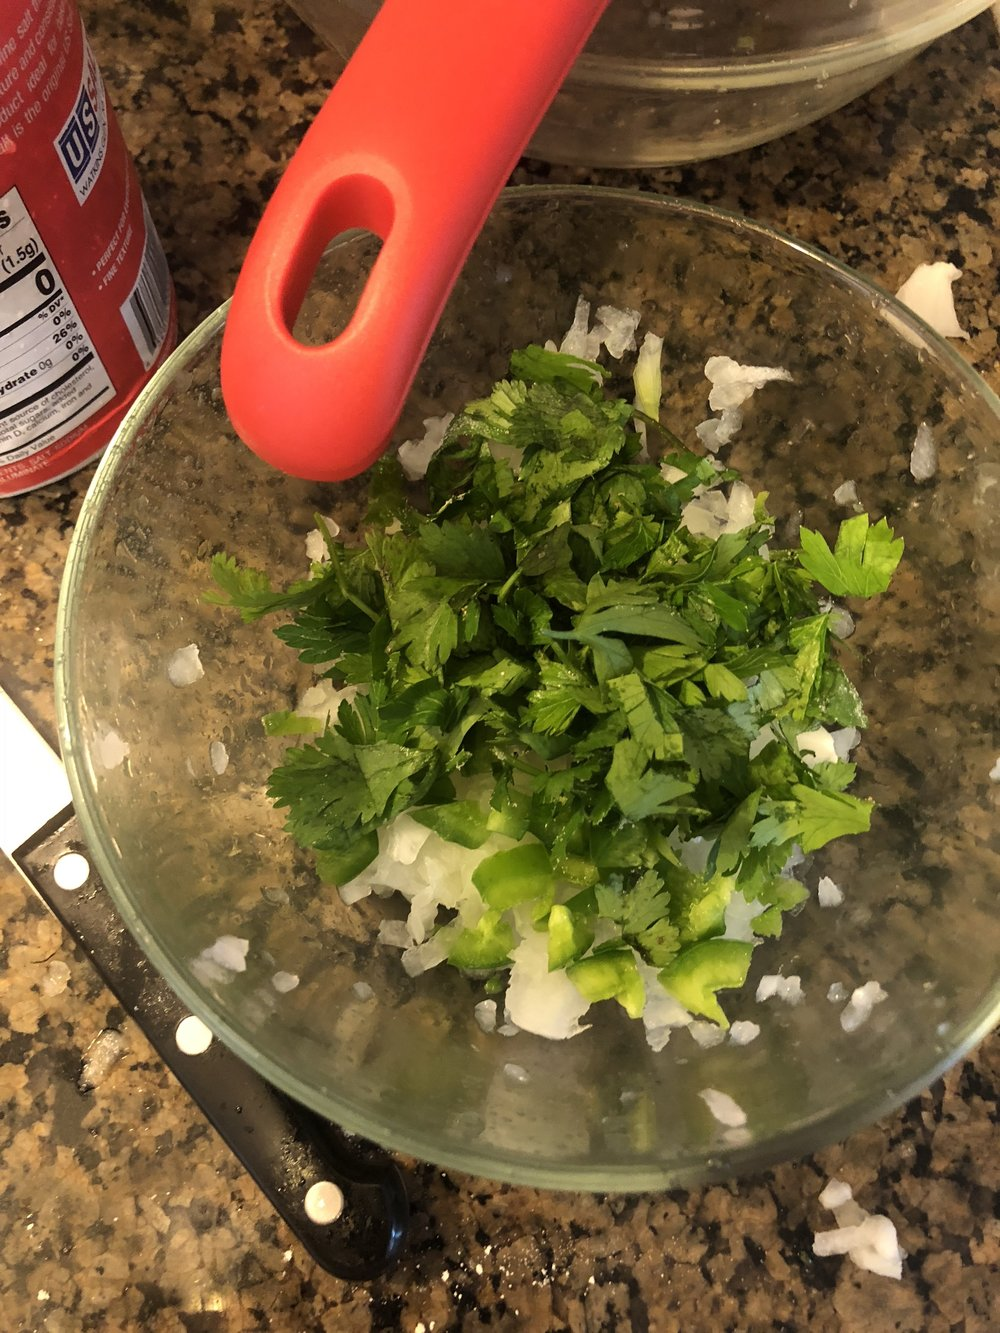 In your medium bowl, add diced jalapeño, herbs and onion. Mix thoroughly.